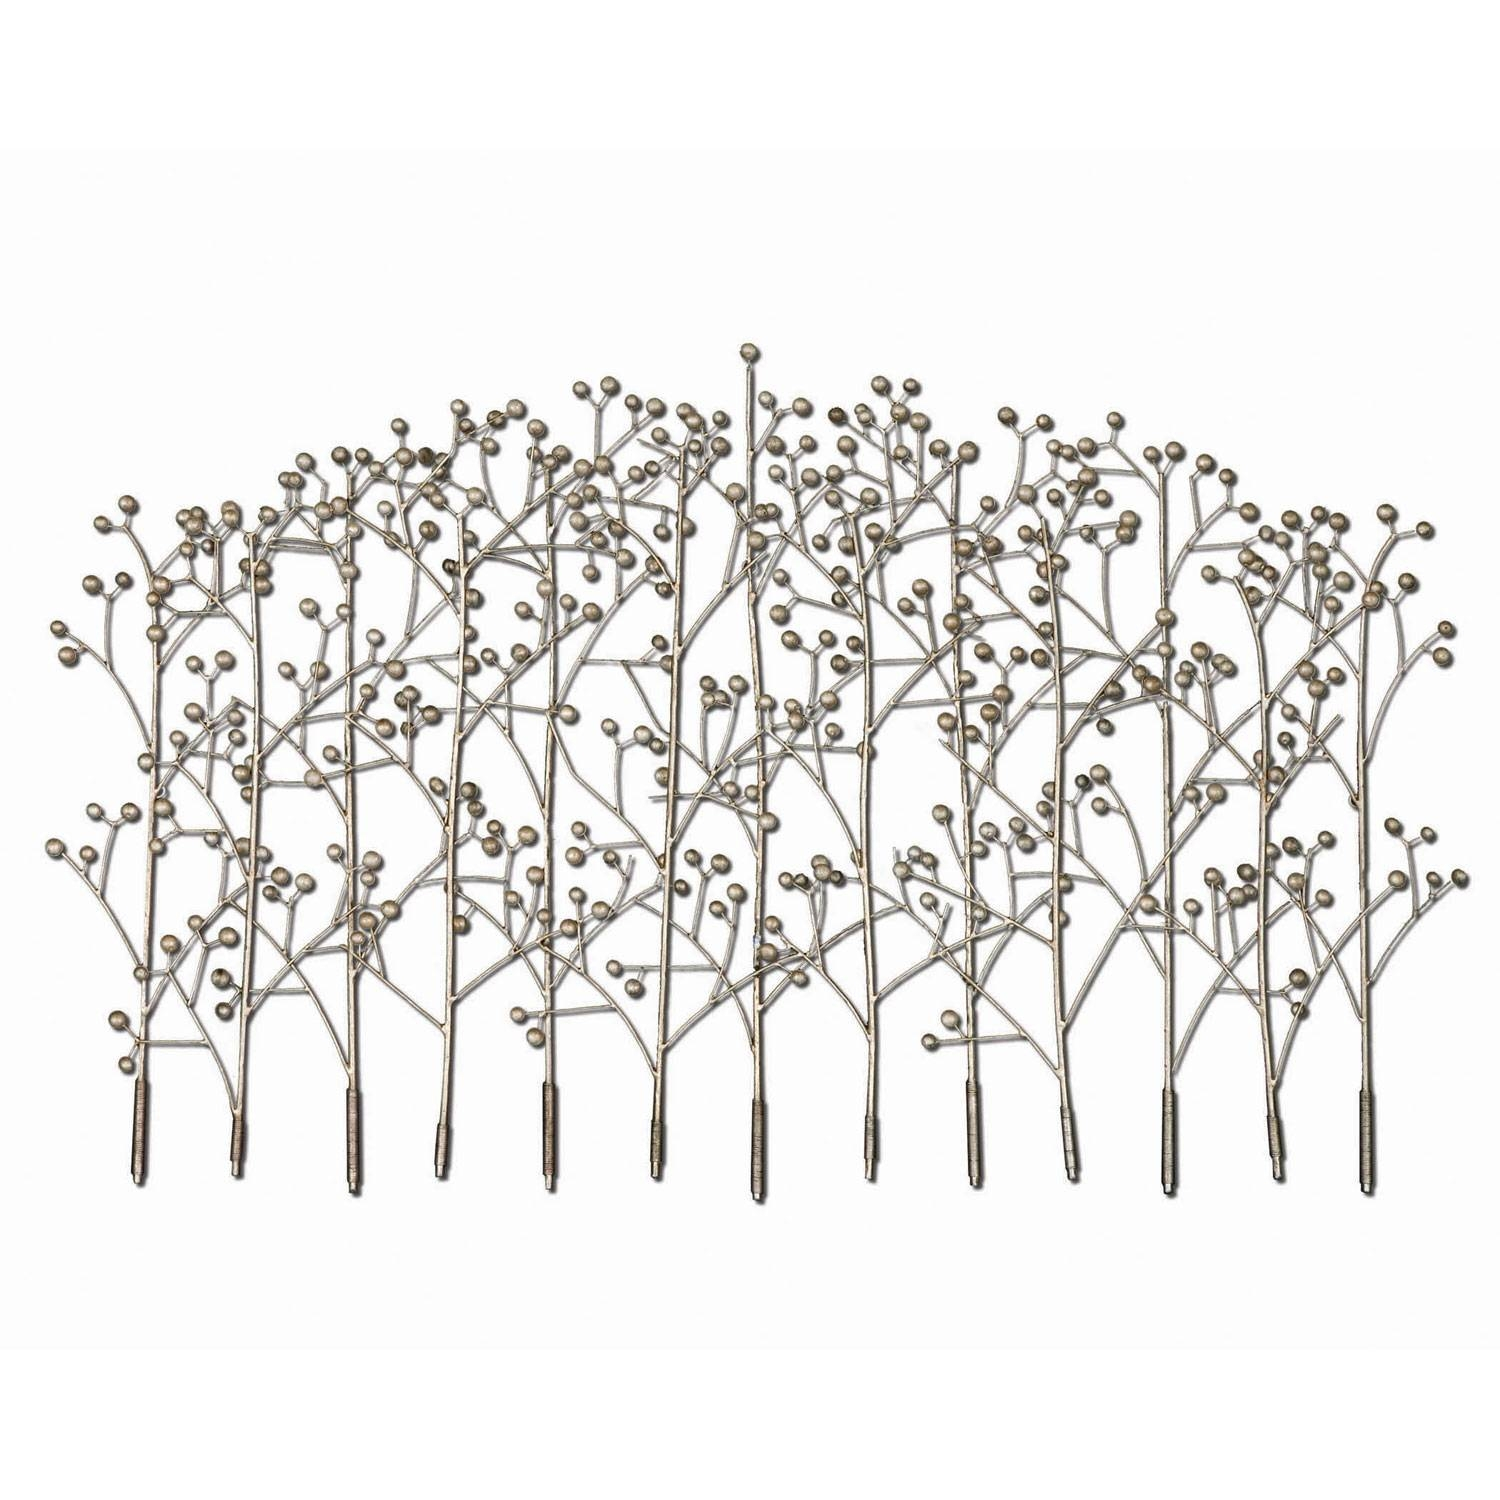 Iron Trees Metal Wall Art Uttermost Wall Sculpture Wall Decor Home With Regard To Recent Metal Wall Art Trees (Gallery 1 of 20)